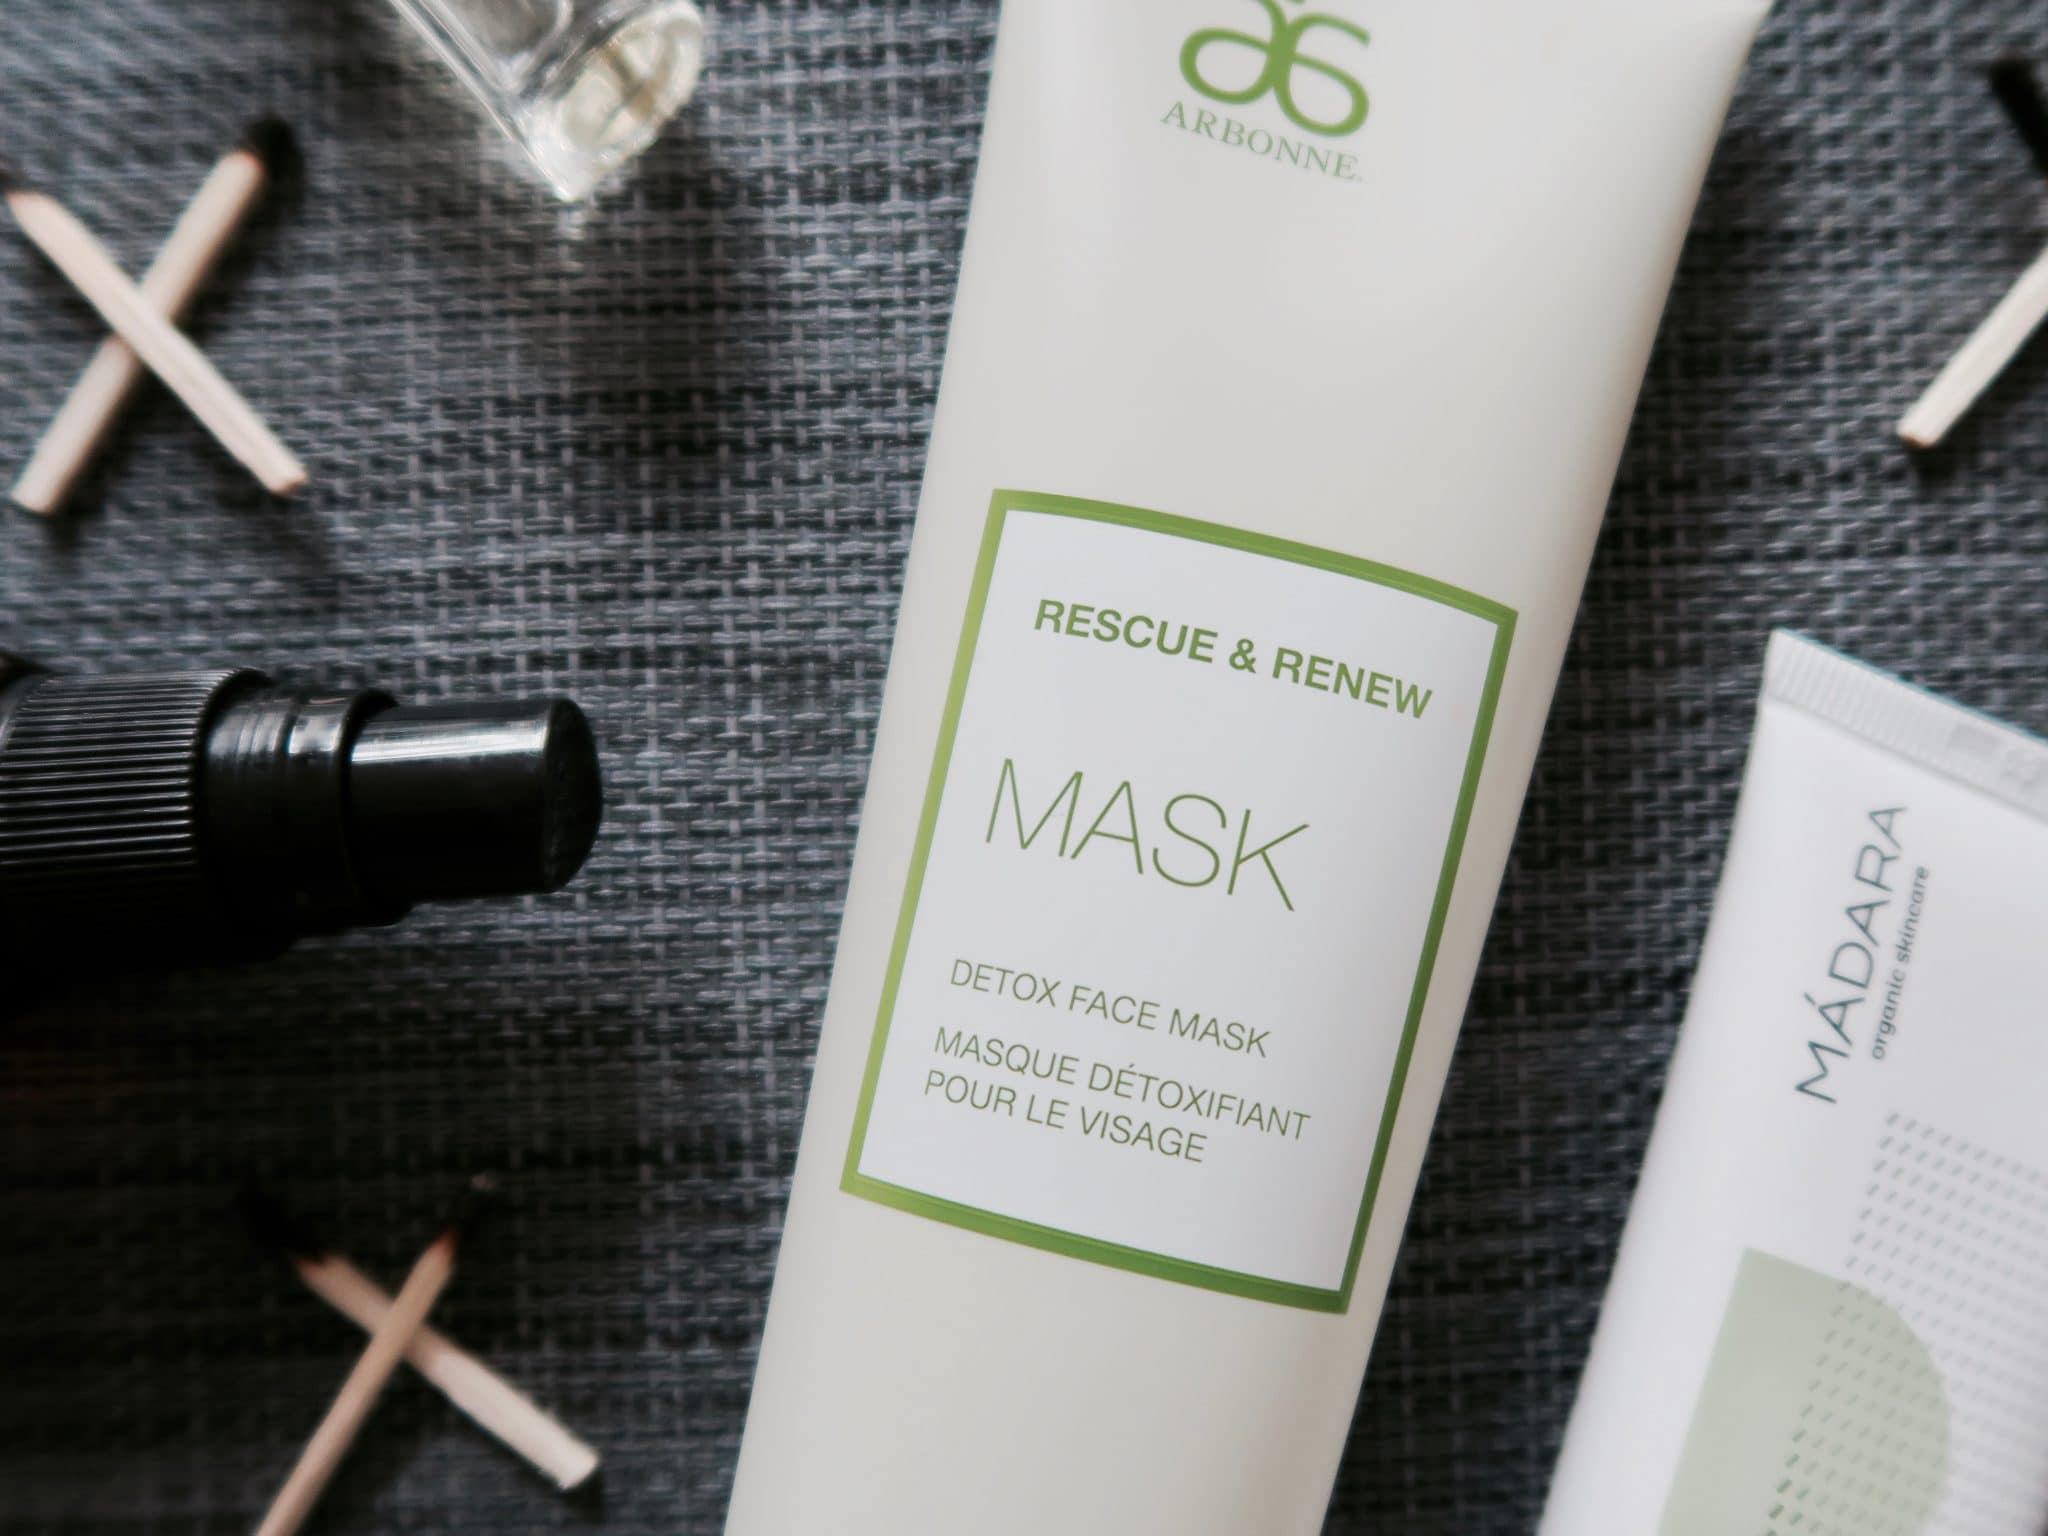 Arbonne Rescue and Renew Mask Review